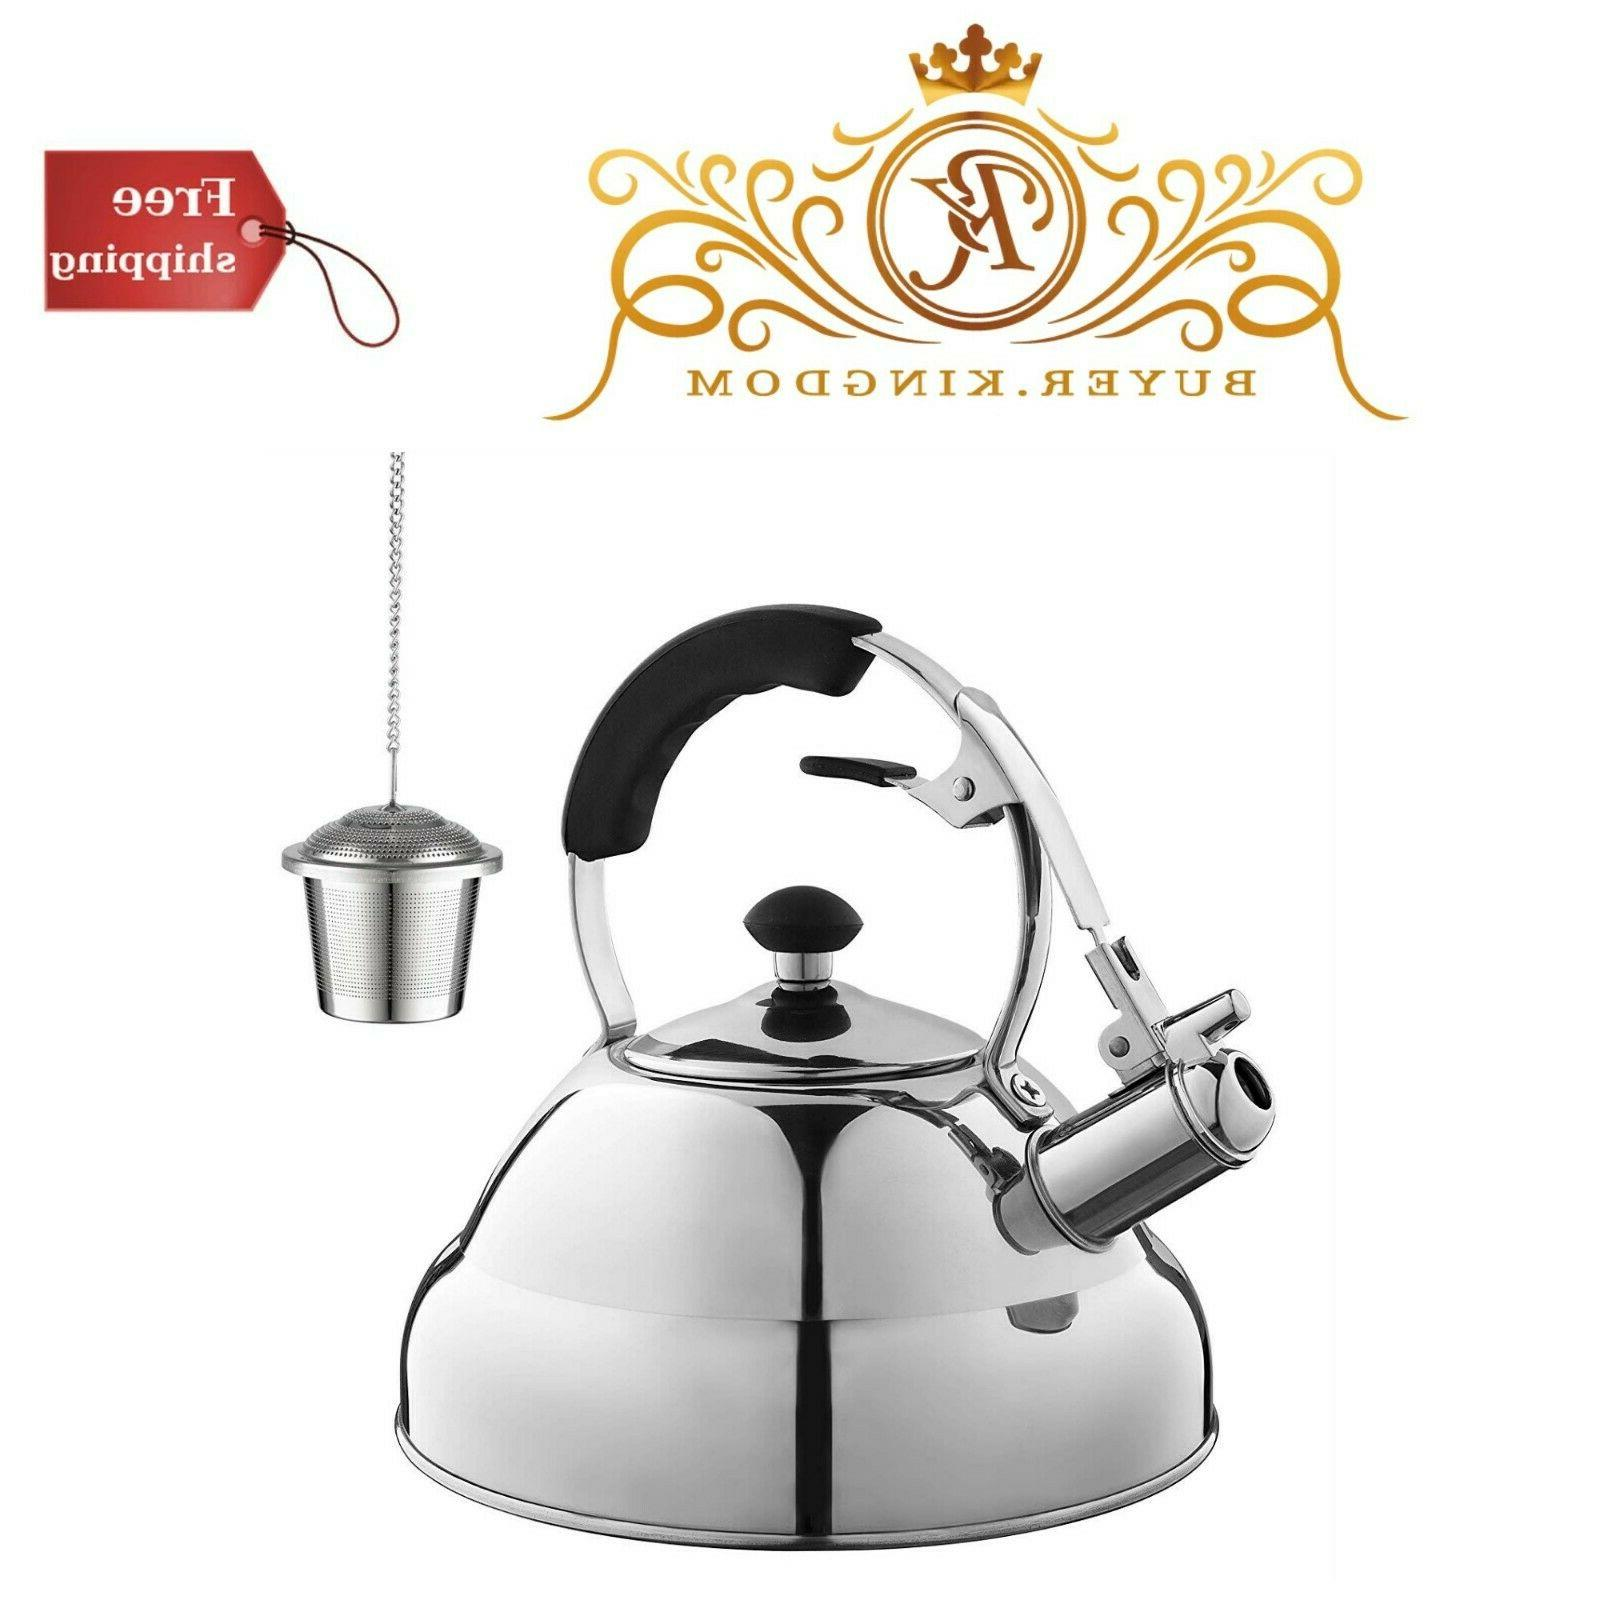 Tea Kettle Capsule Bottom Mirror Finish Teapot Home Kitchen